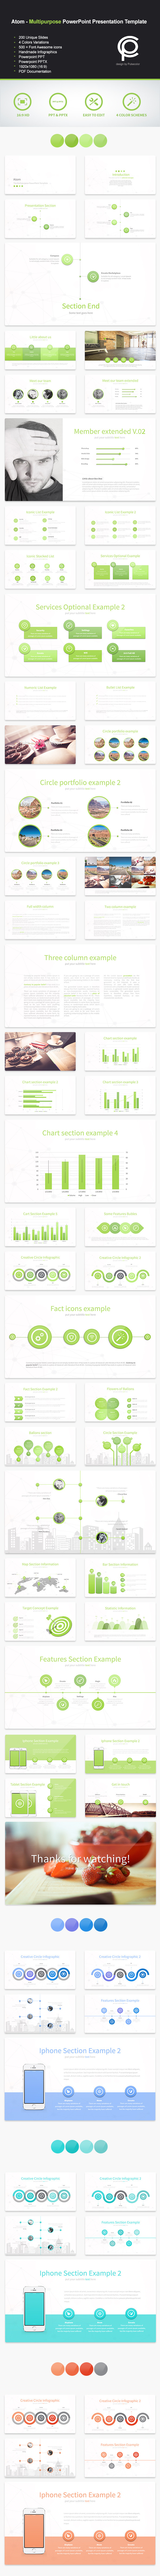 GraphicRiver Atom Multipurpose PowerPoint Presentation 10949098